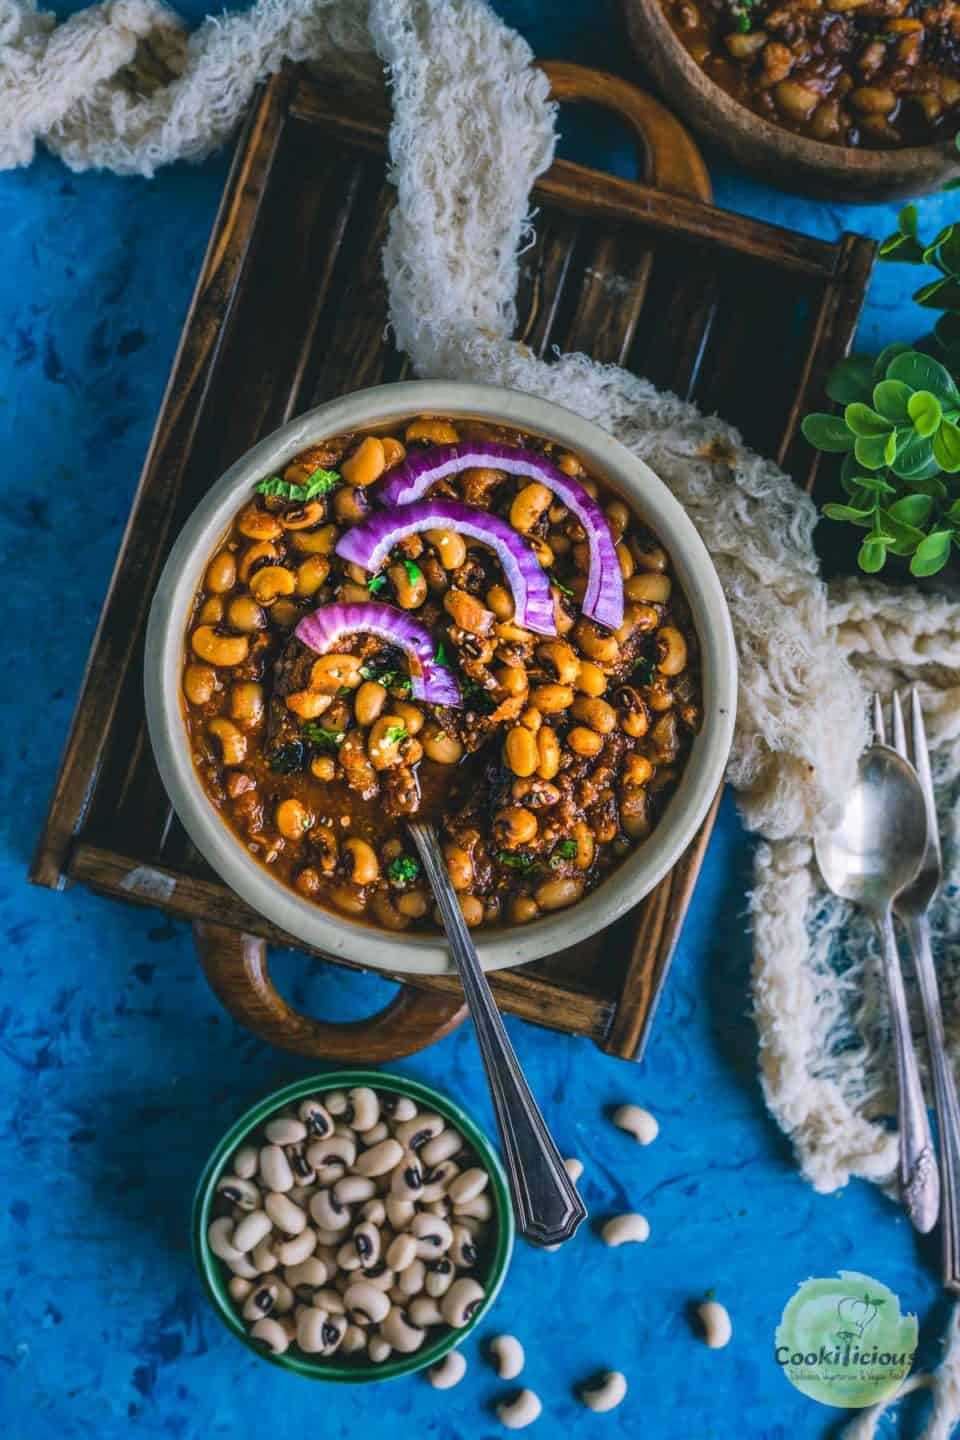 Chettinad Black Eyed Peas Curry  served in a round bowl with a spoon in it